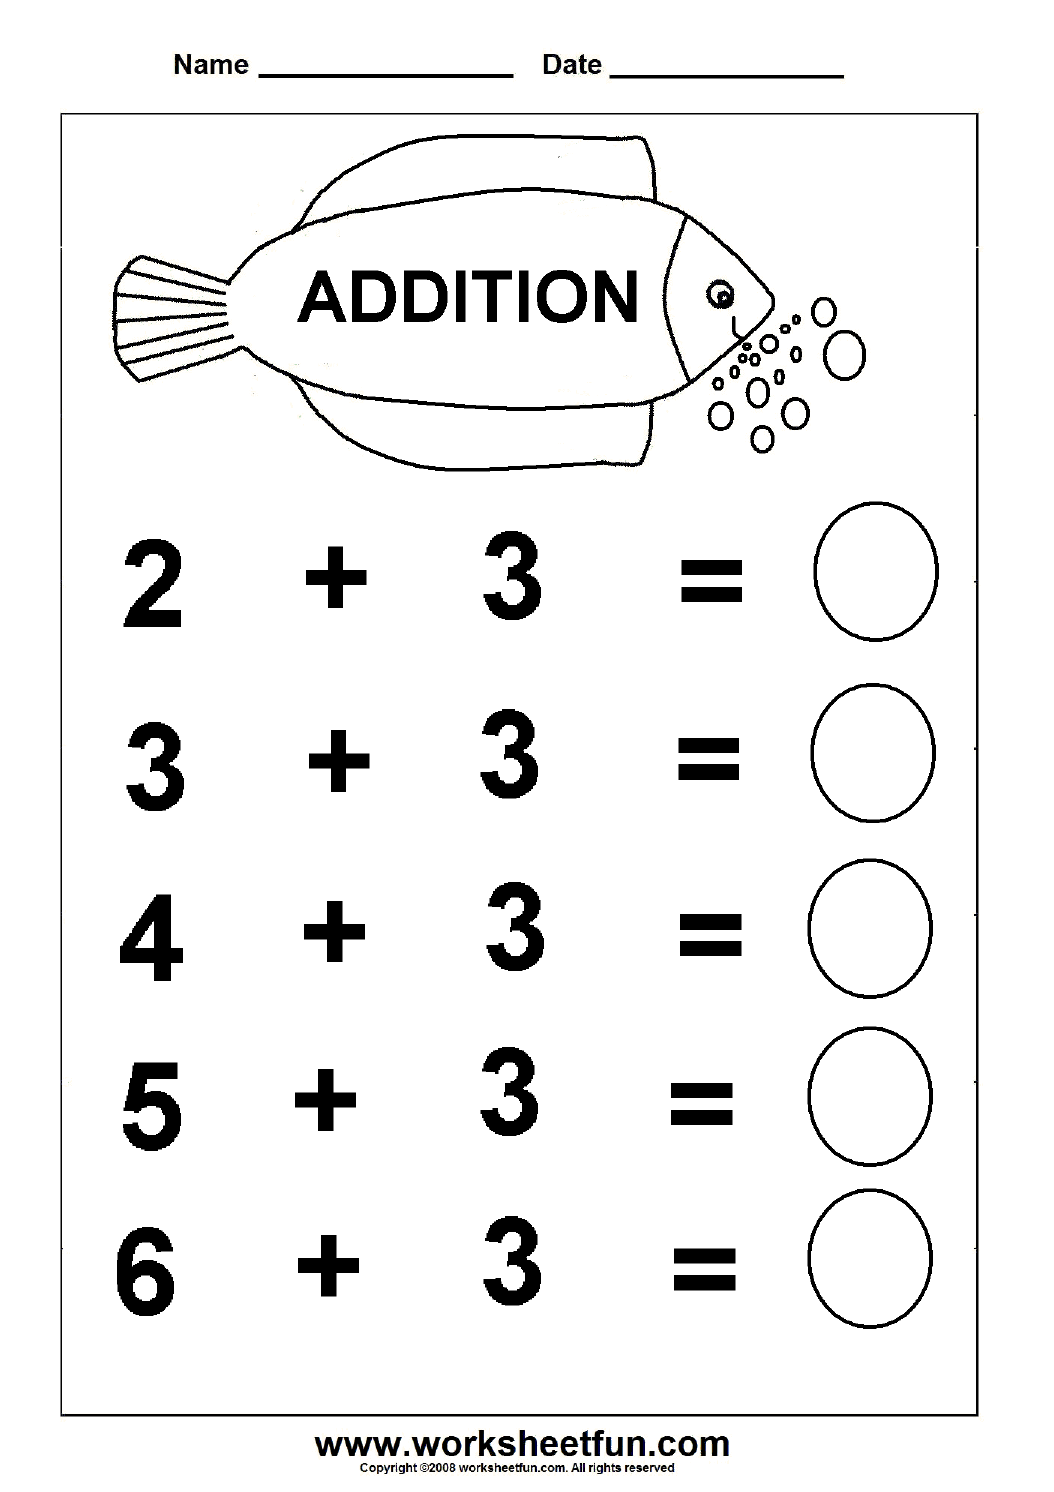 Addition Basic Addition Facts FREE Printable Worksheets – Timed Addition Worksheets